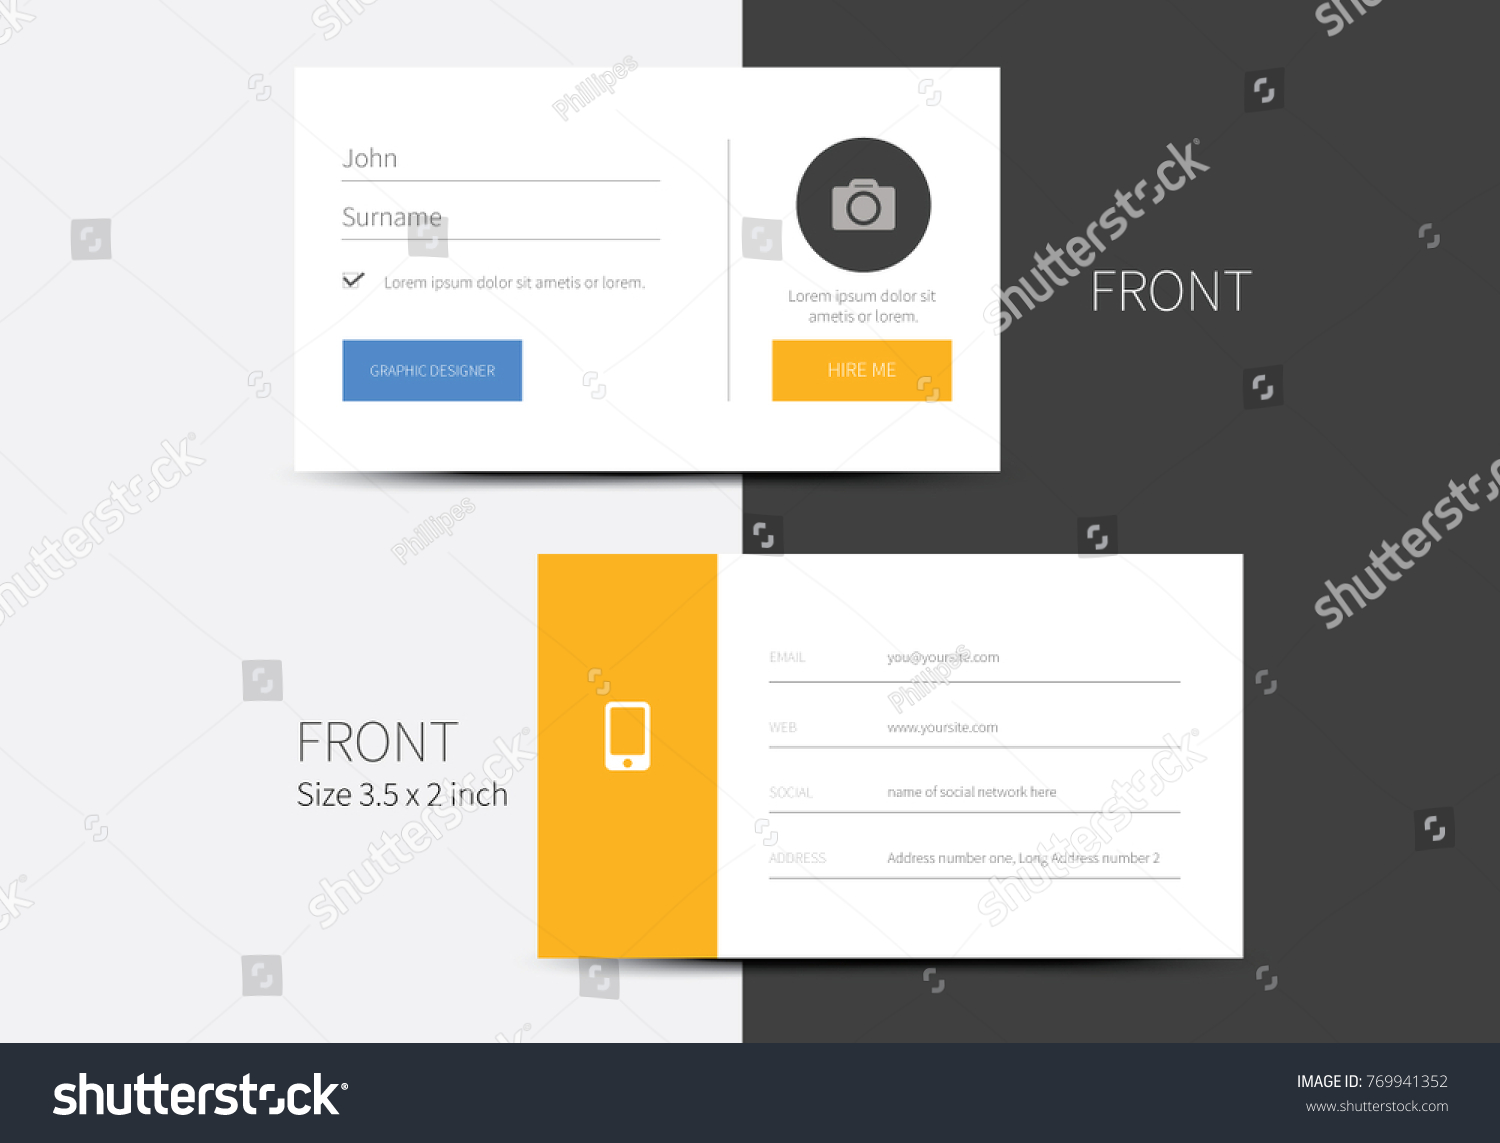 Business card vector simulating app profile stock vector hd royalty business card vector simulating app profile login layout with front and back side business graphic colourmoves